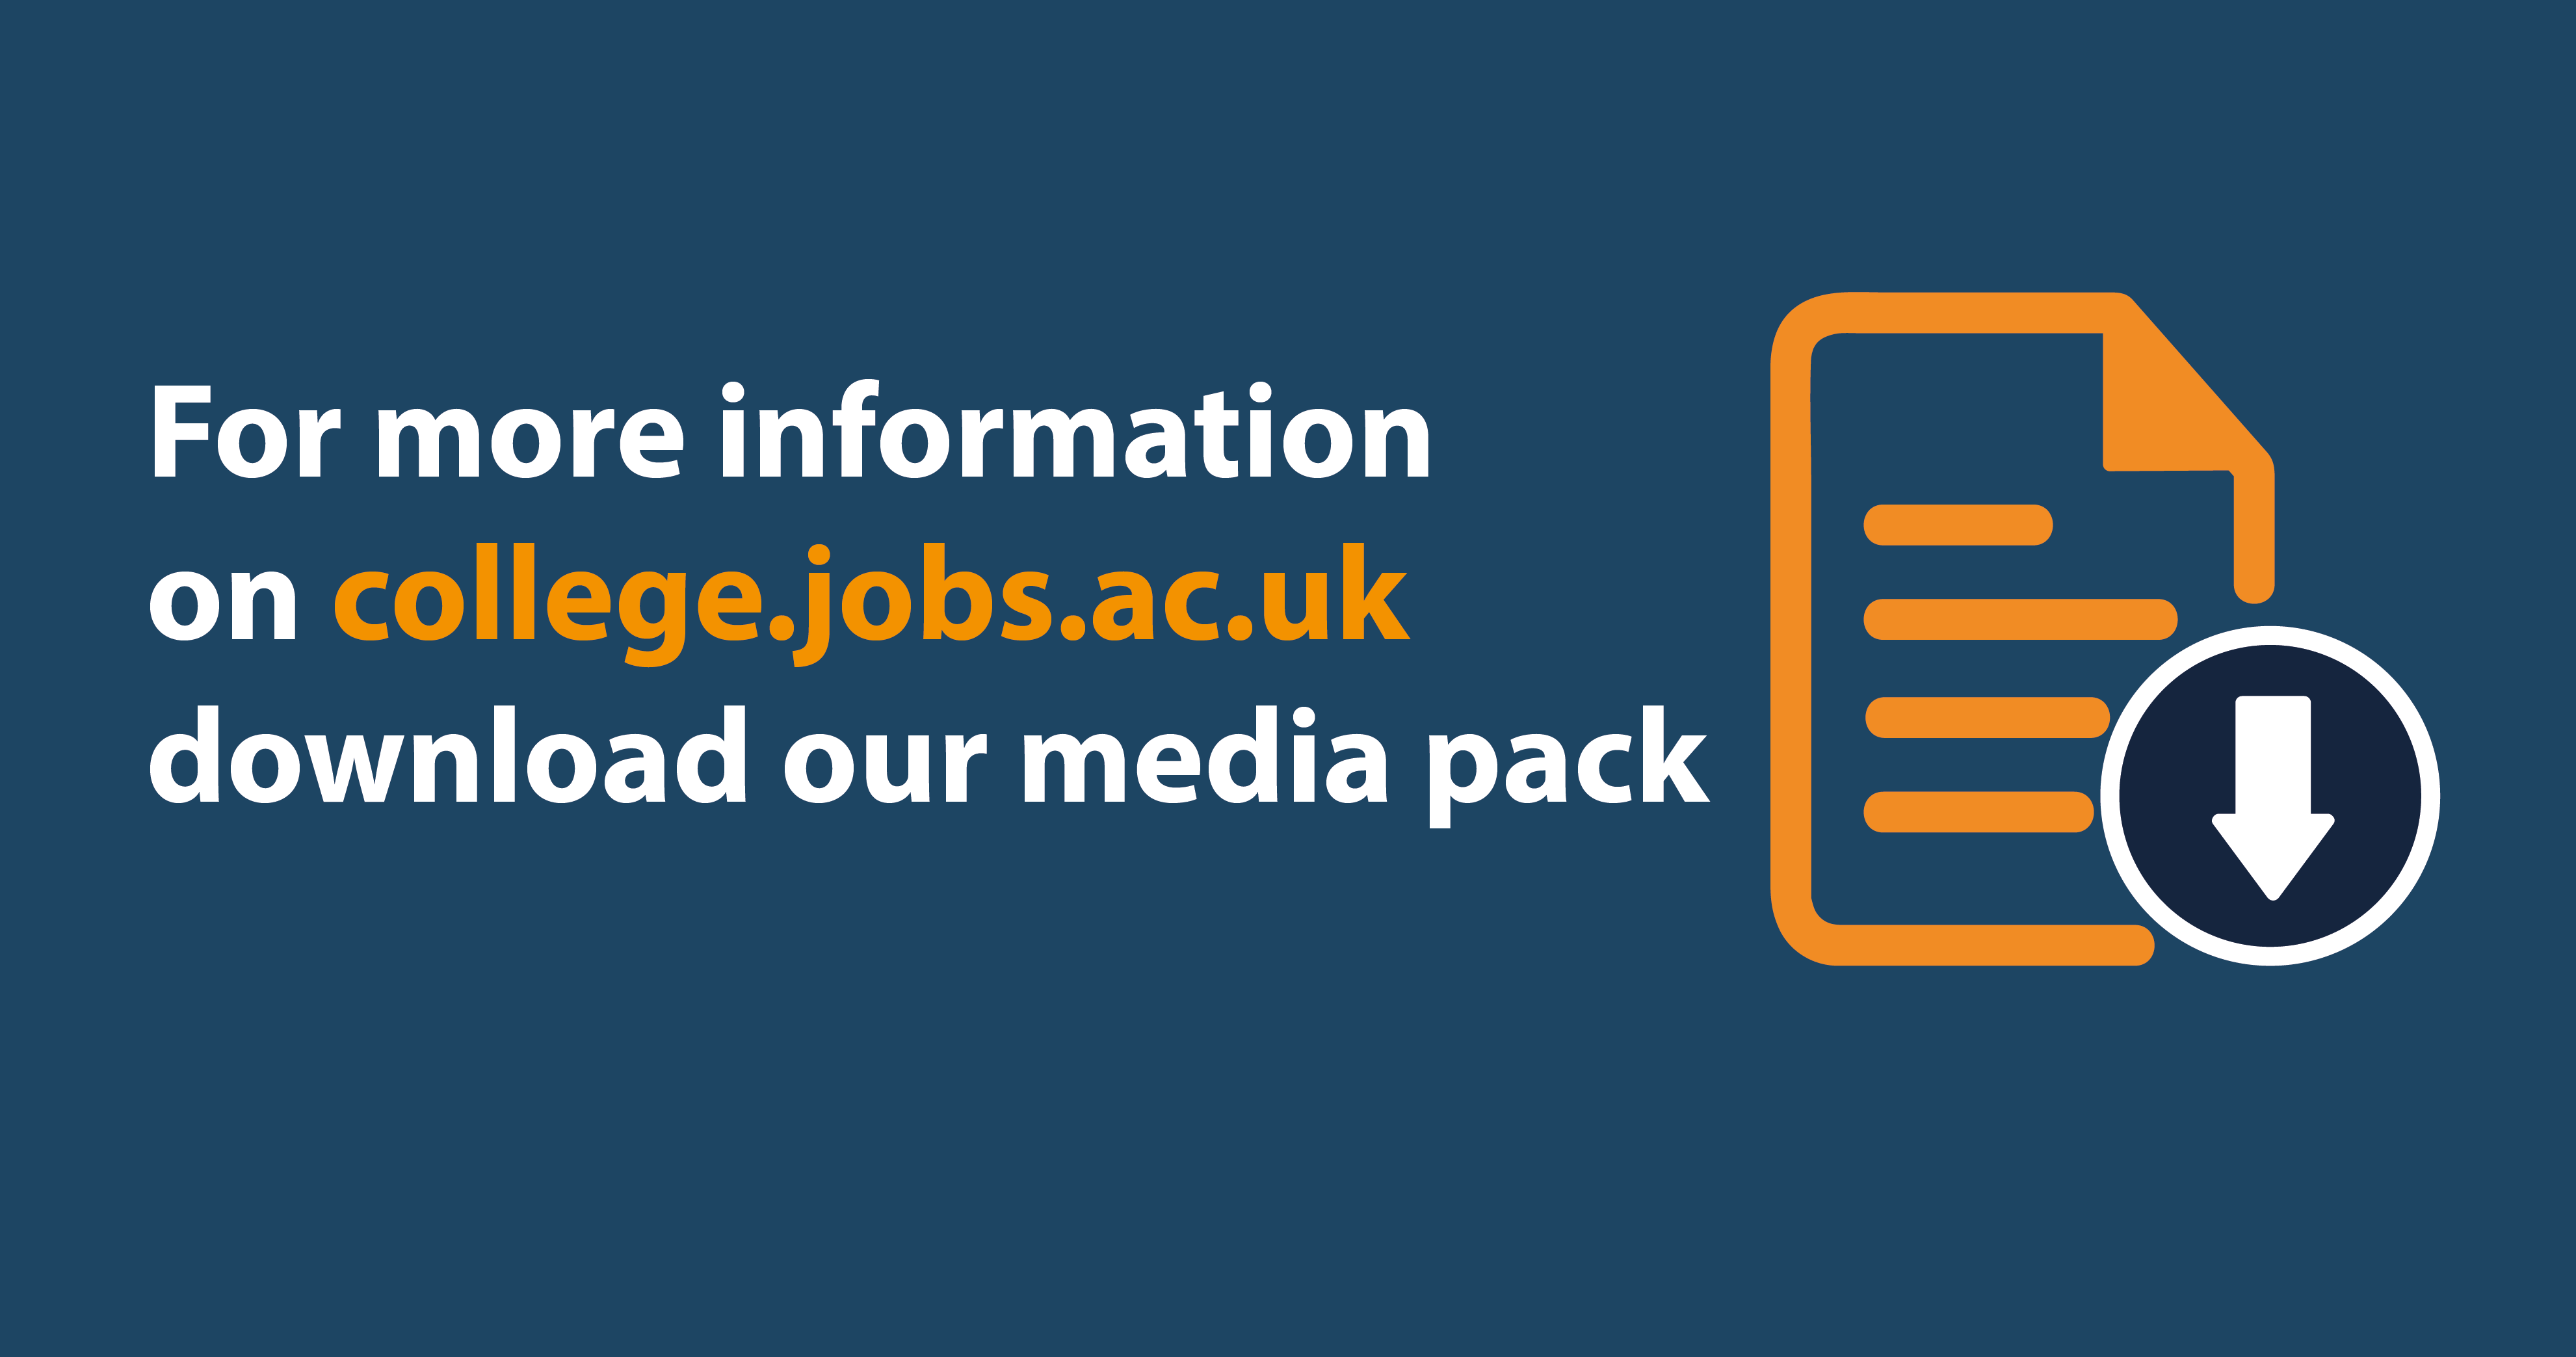 Download our media pack | college.jobs.ac.uk